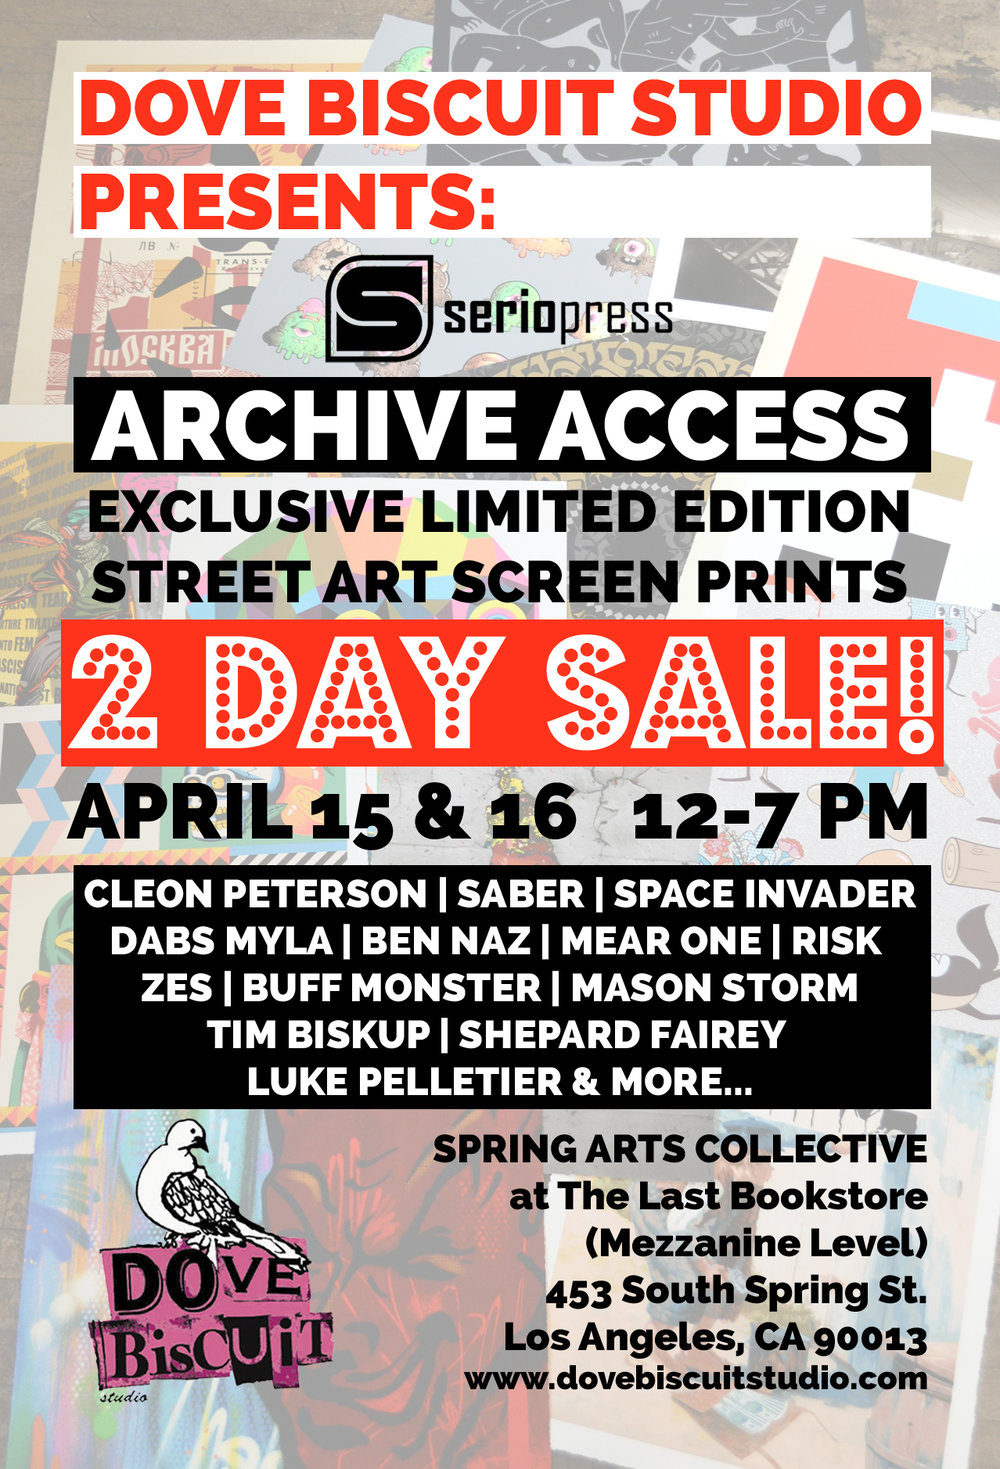 31a571f3 April 15th & 16th from 12-7pm at #dovebiscuitstudio TWO DAY ONLY SALE!!!  Exclusive limited edition, signed screen prints from #SerioPress.